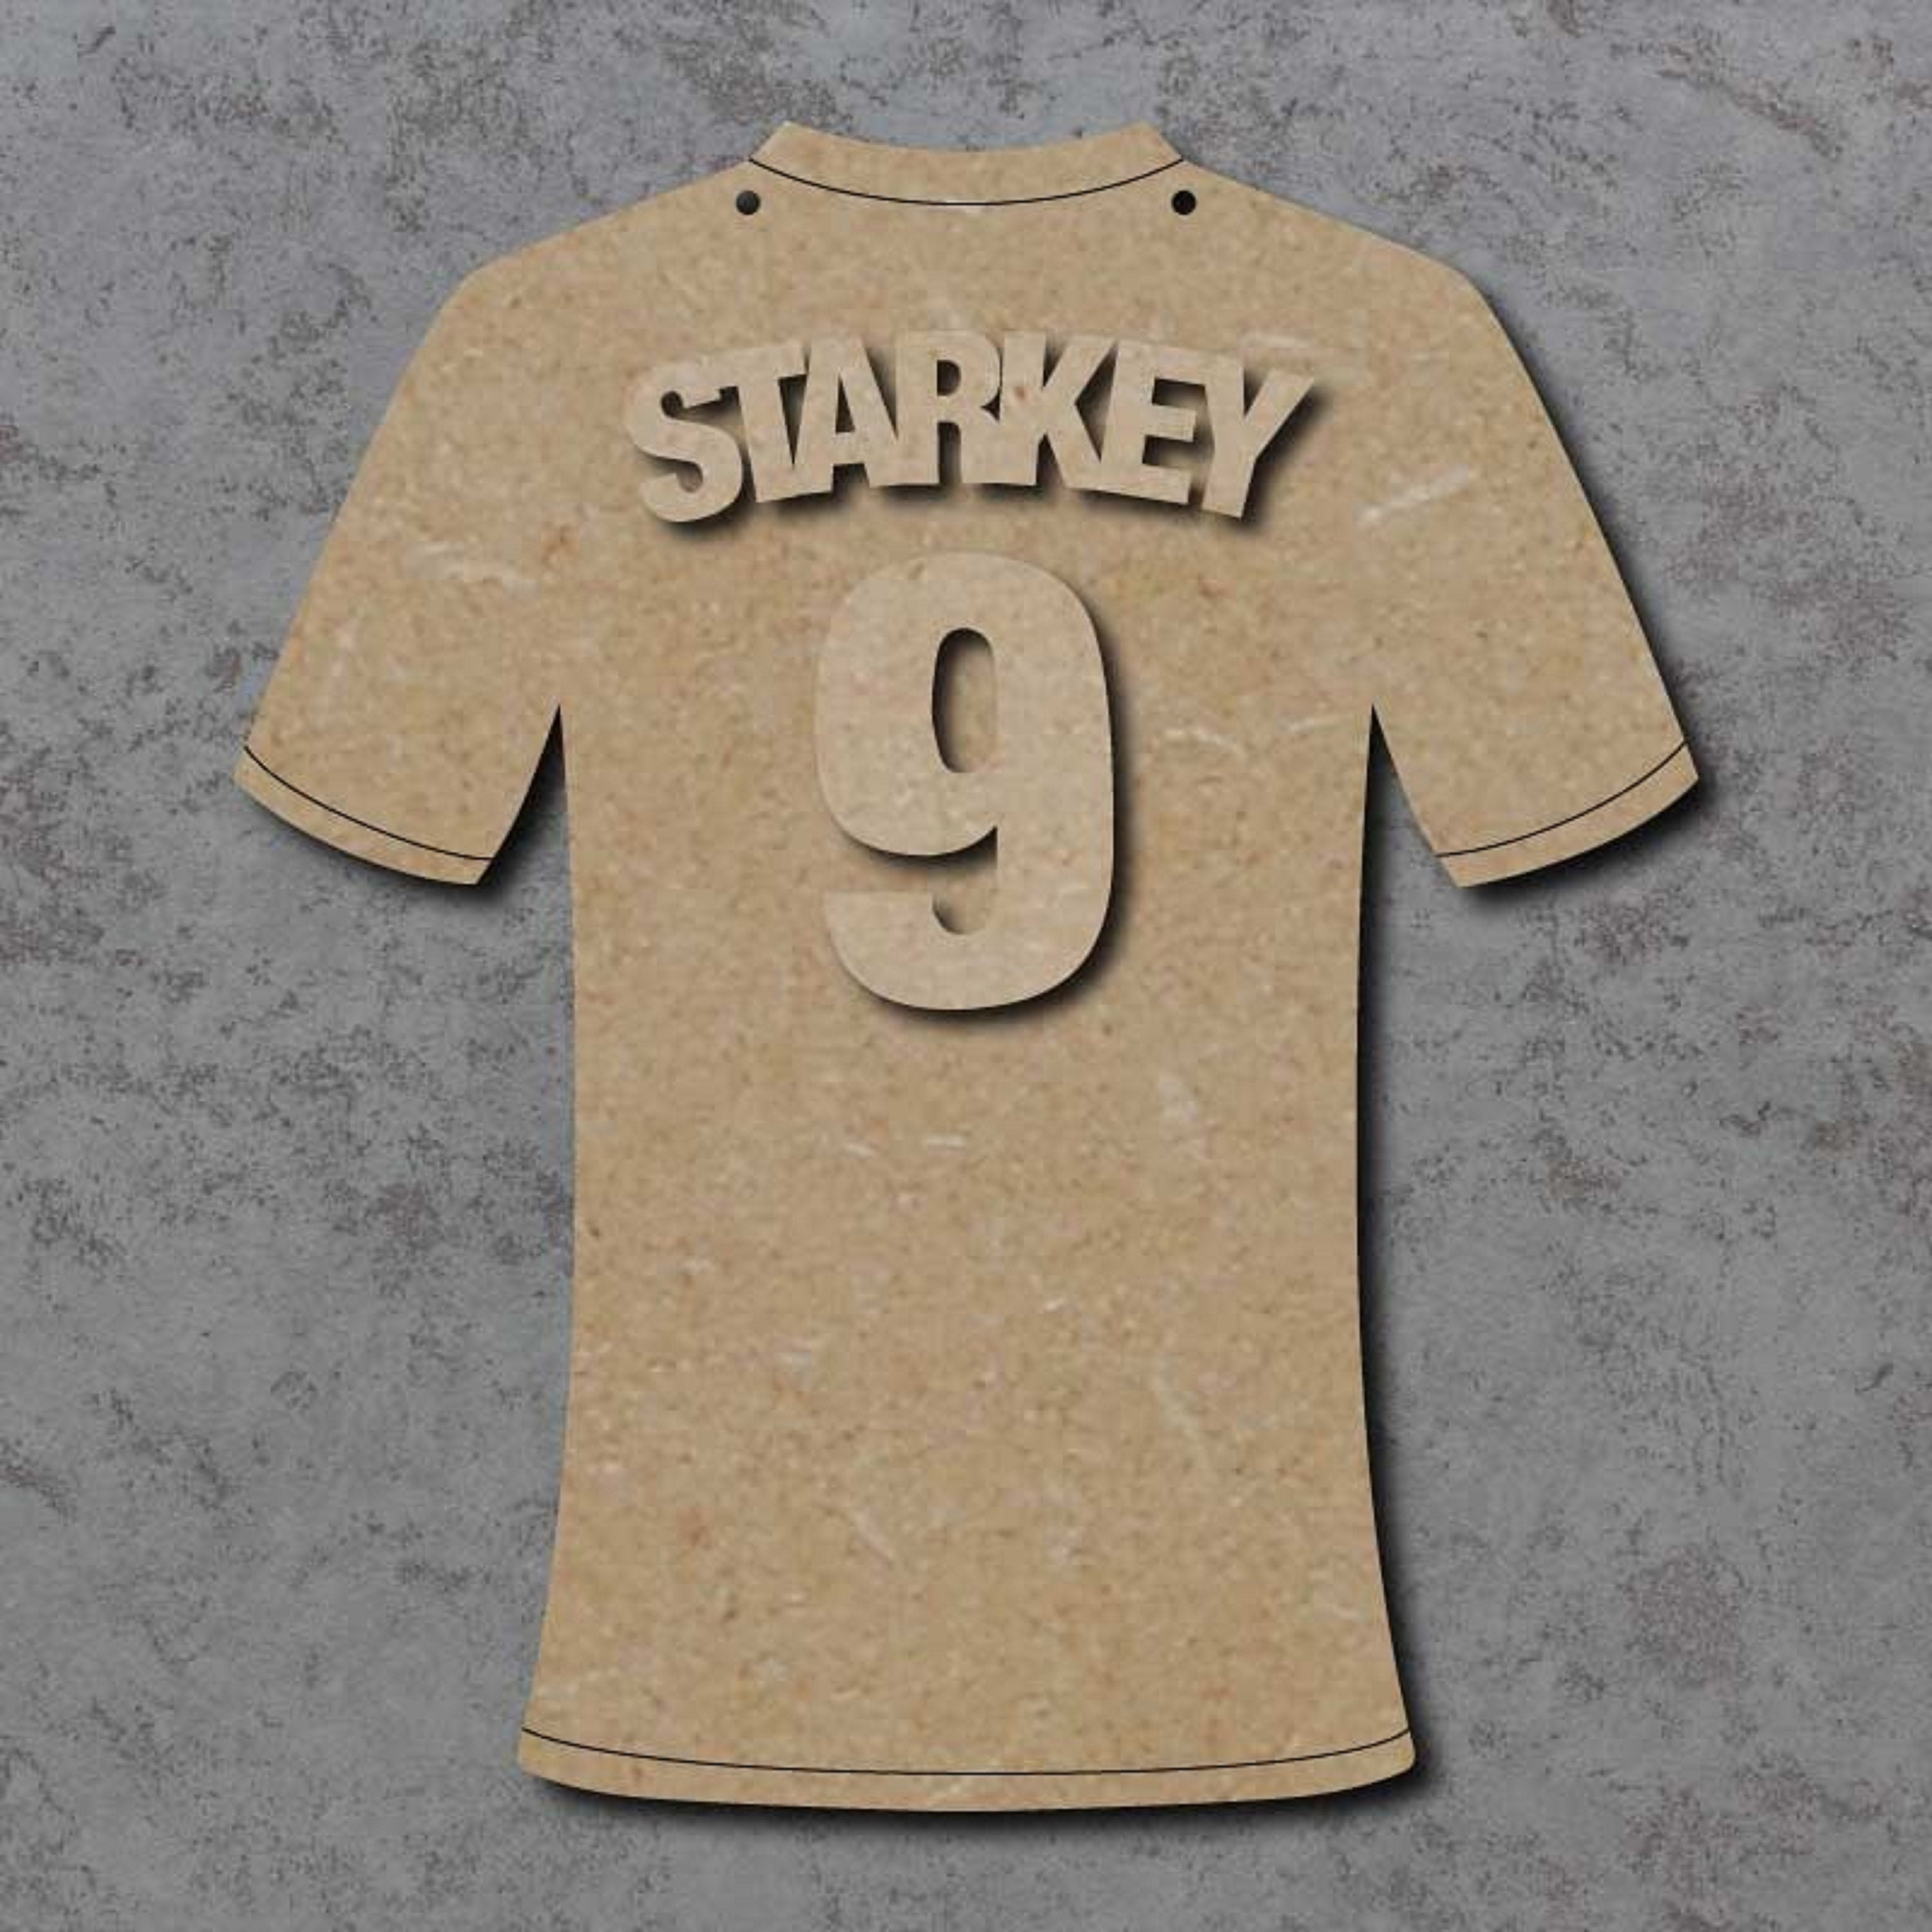 MDF wooden blanks ready to paint shapes Mdf Personalised Football Name Plaque